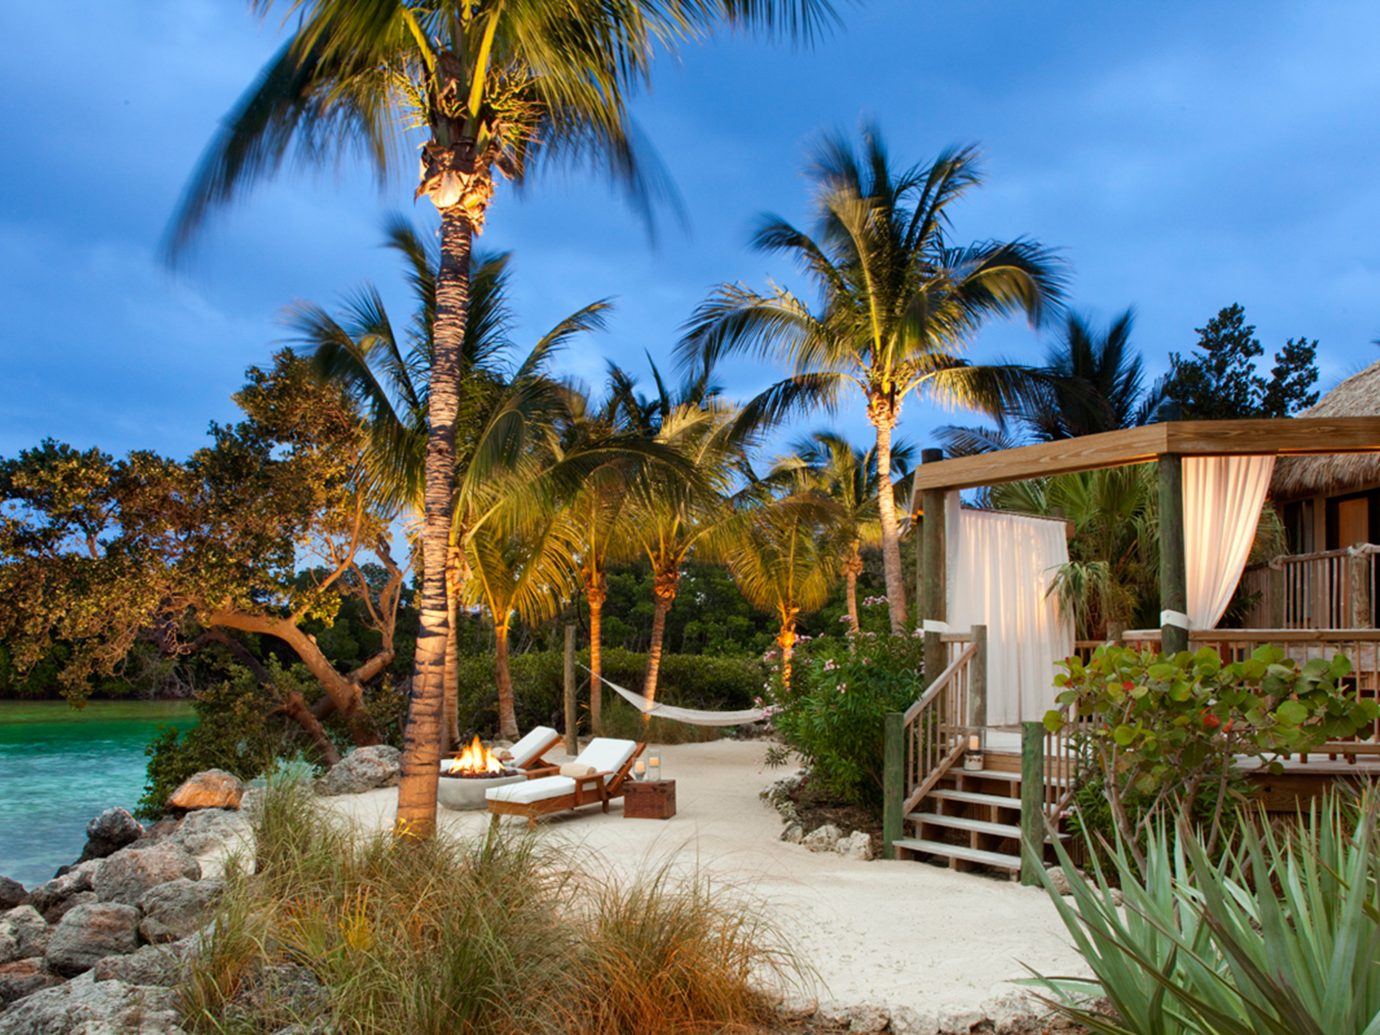 Beachfront cabin at Little Palm Island Resort & Spa, Florida Keys